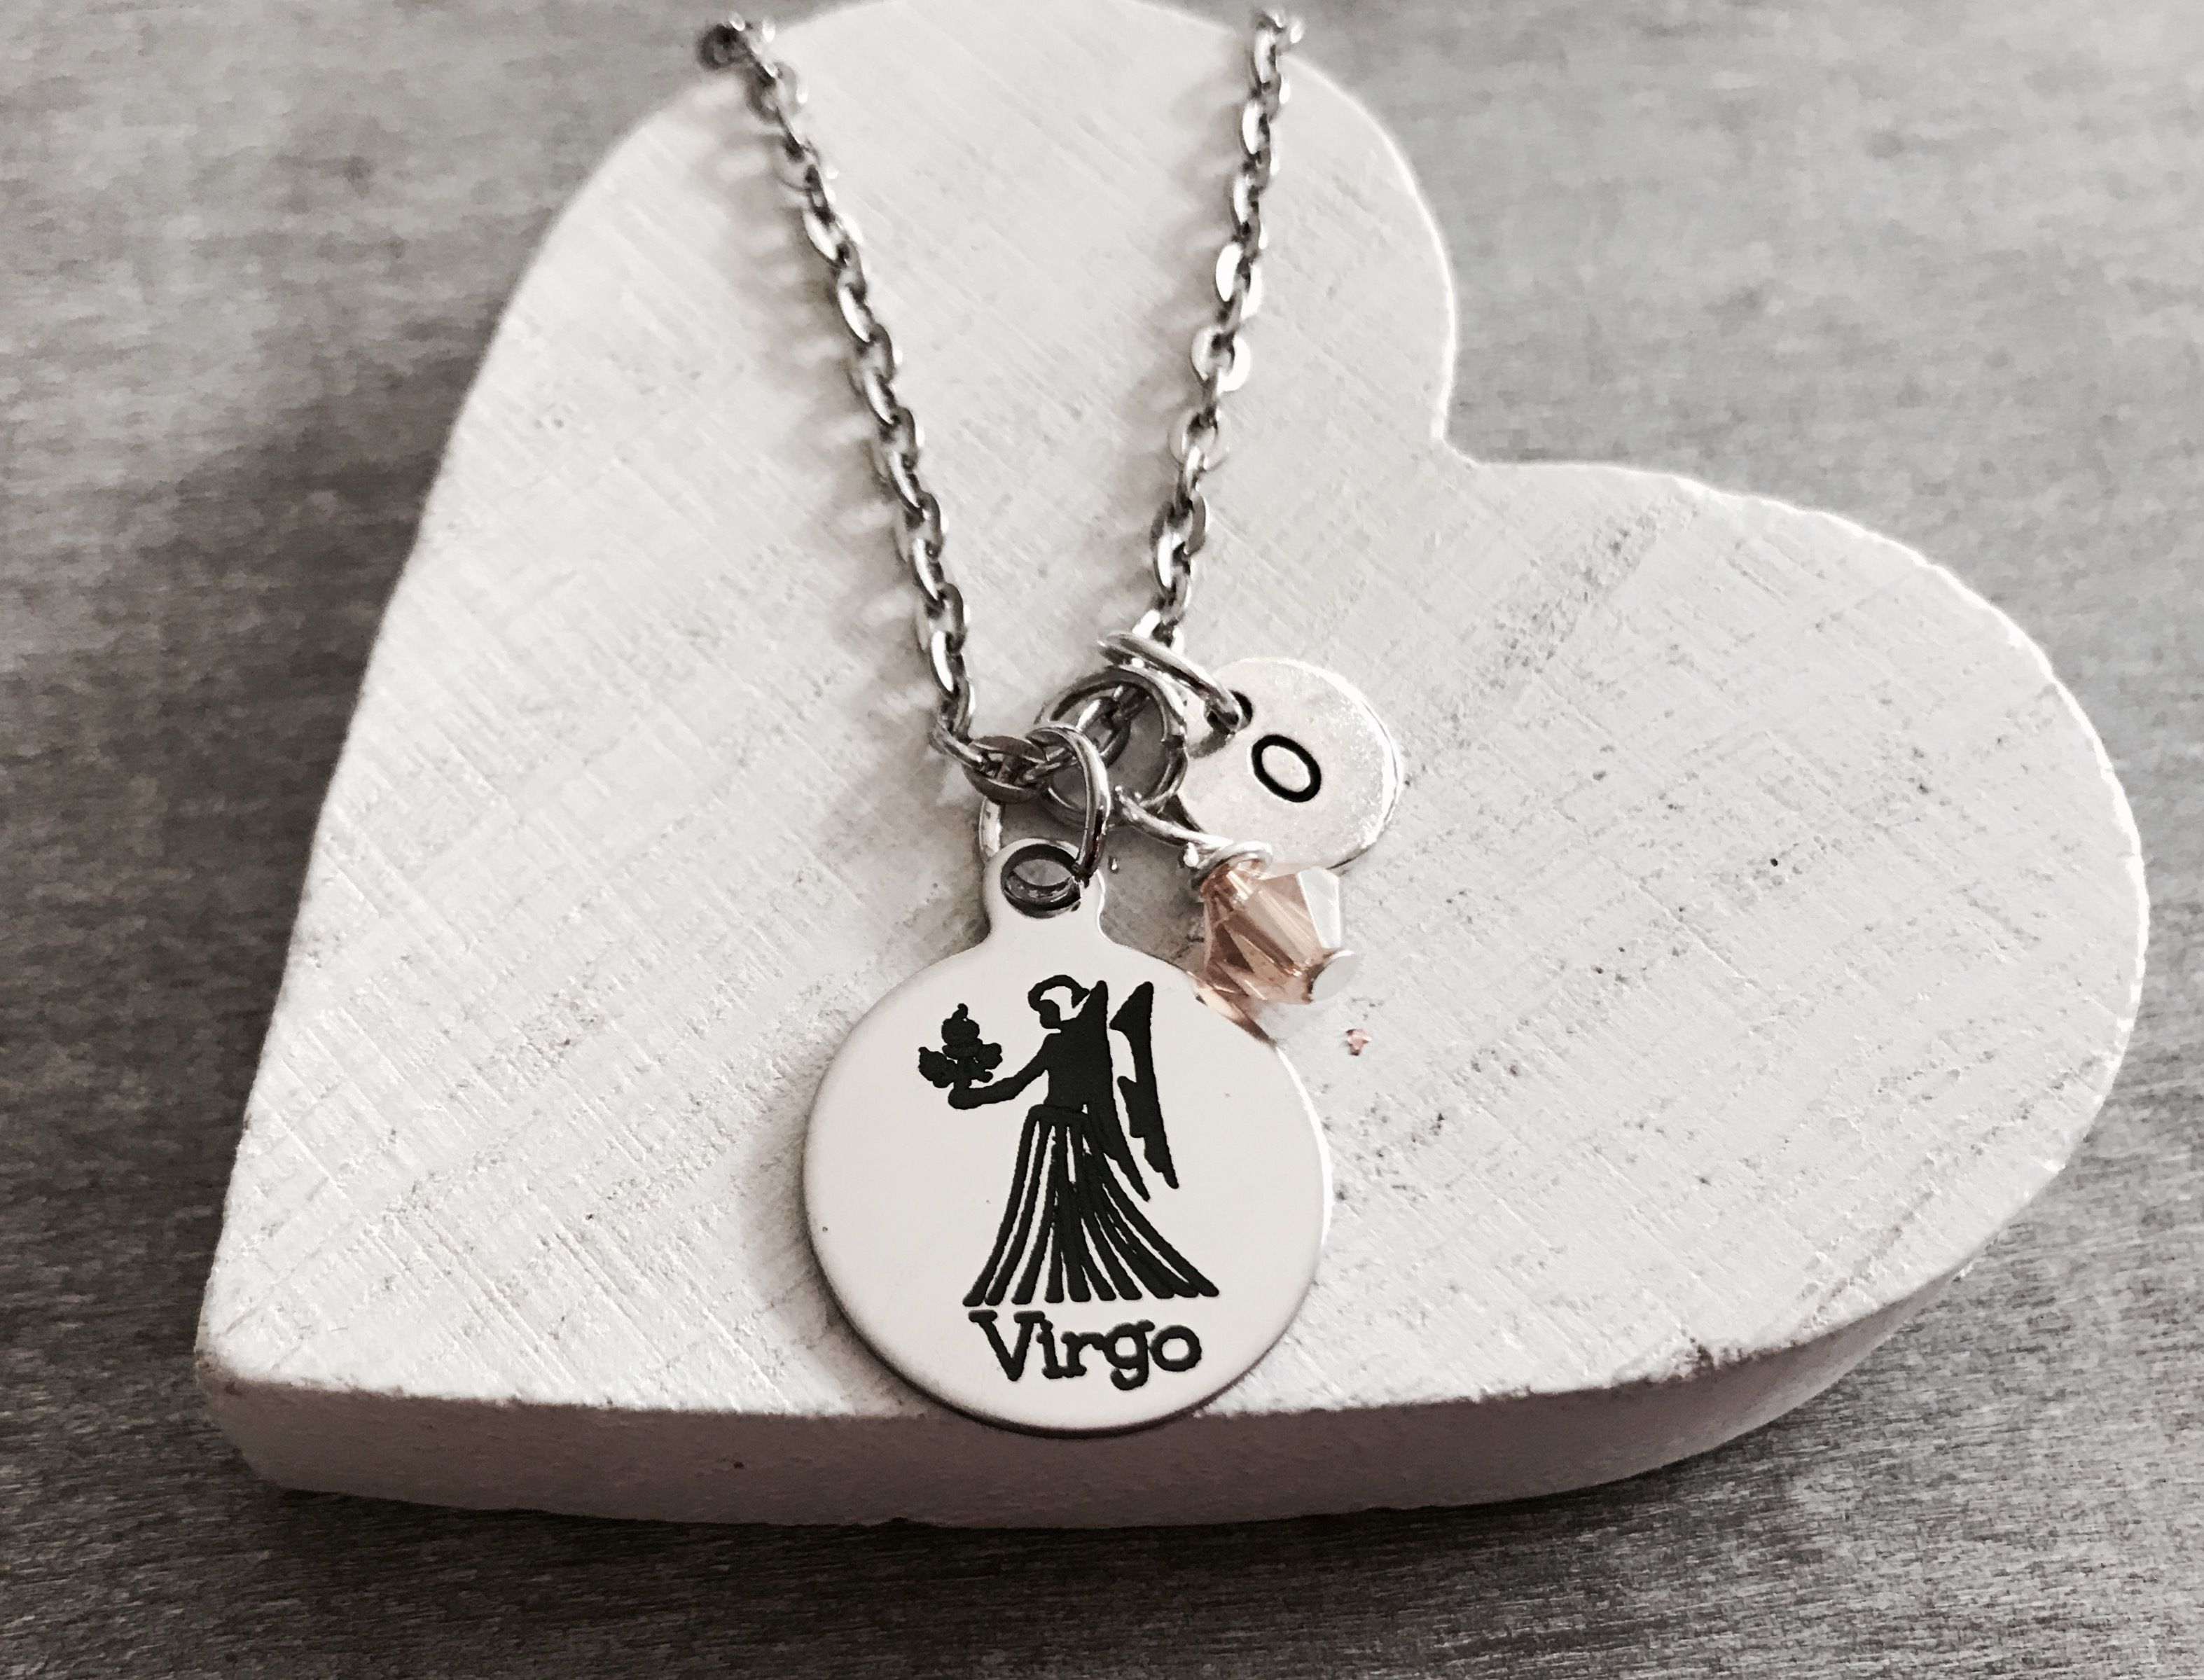 constellations catalog necklace virgo constellation thatch